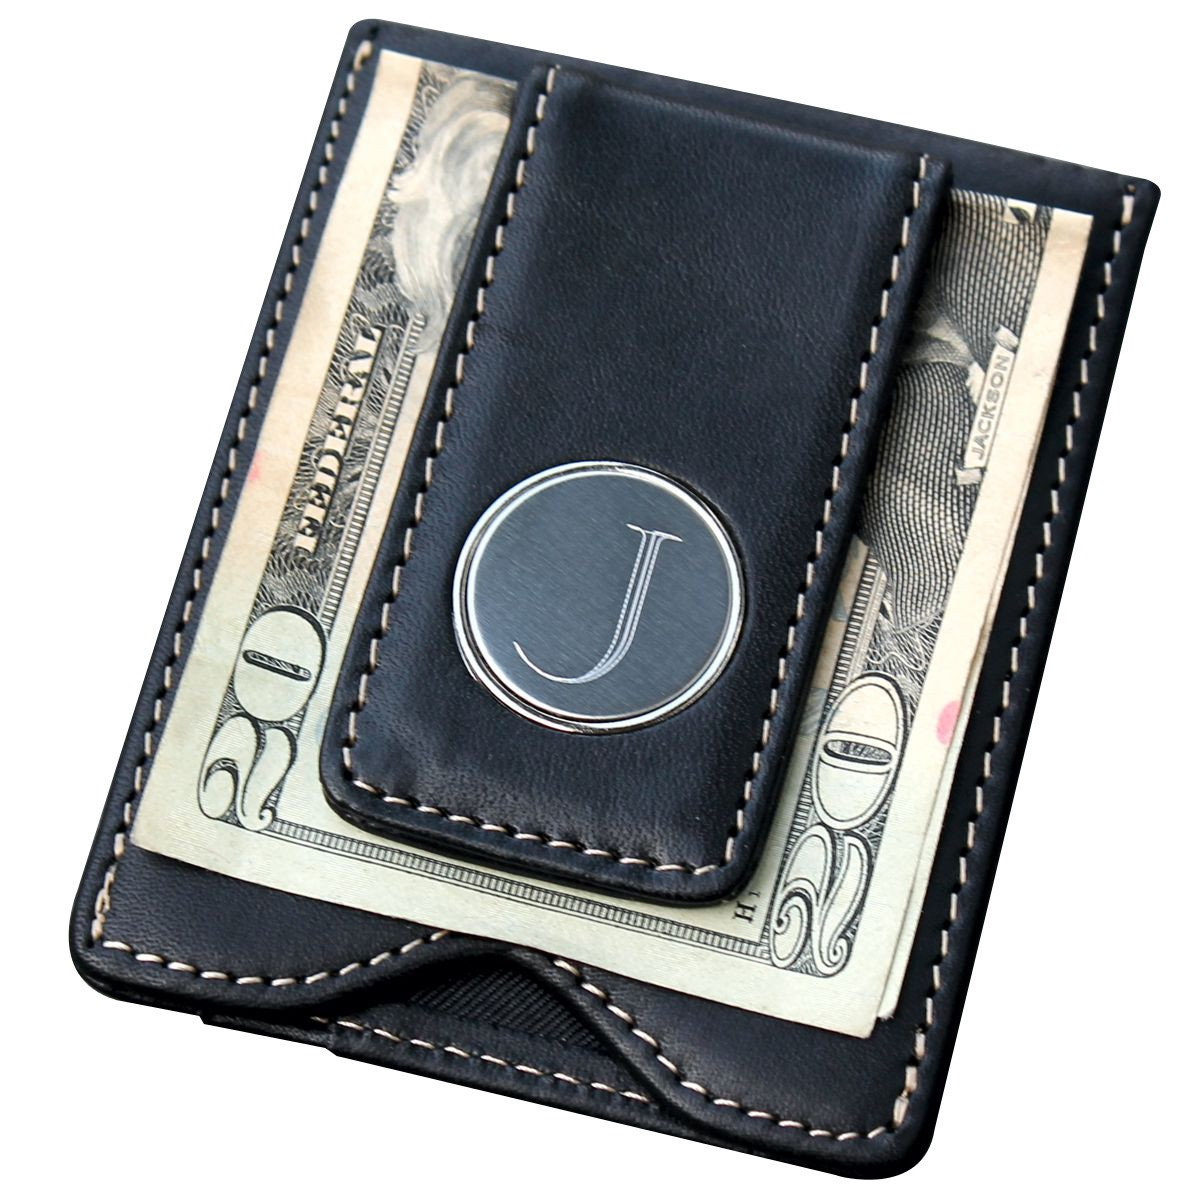 Money Clip with Wallet, Personalized Money Clip Wallet Minimalist, Monogram Money Clip Wallet, Custom Money Clip Wallet, Wallet with Clip